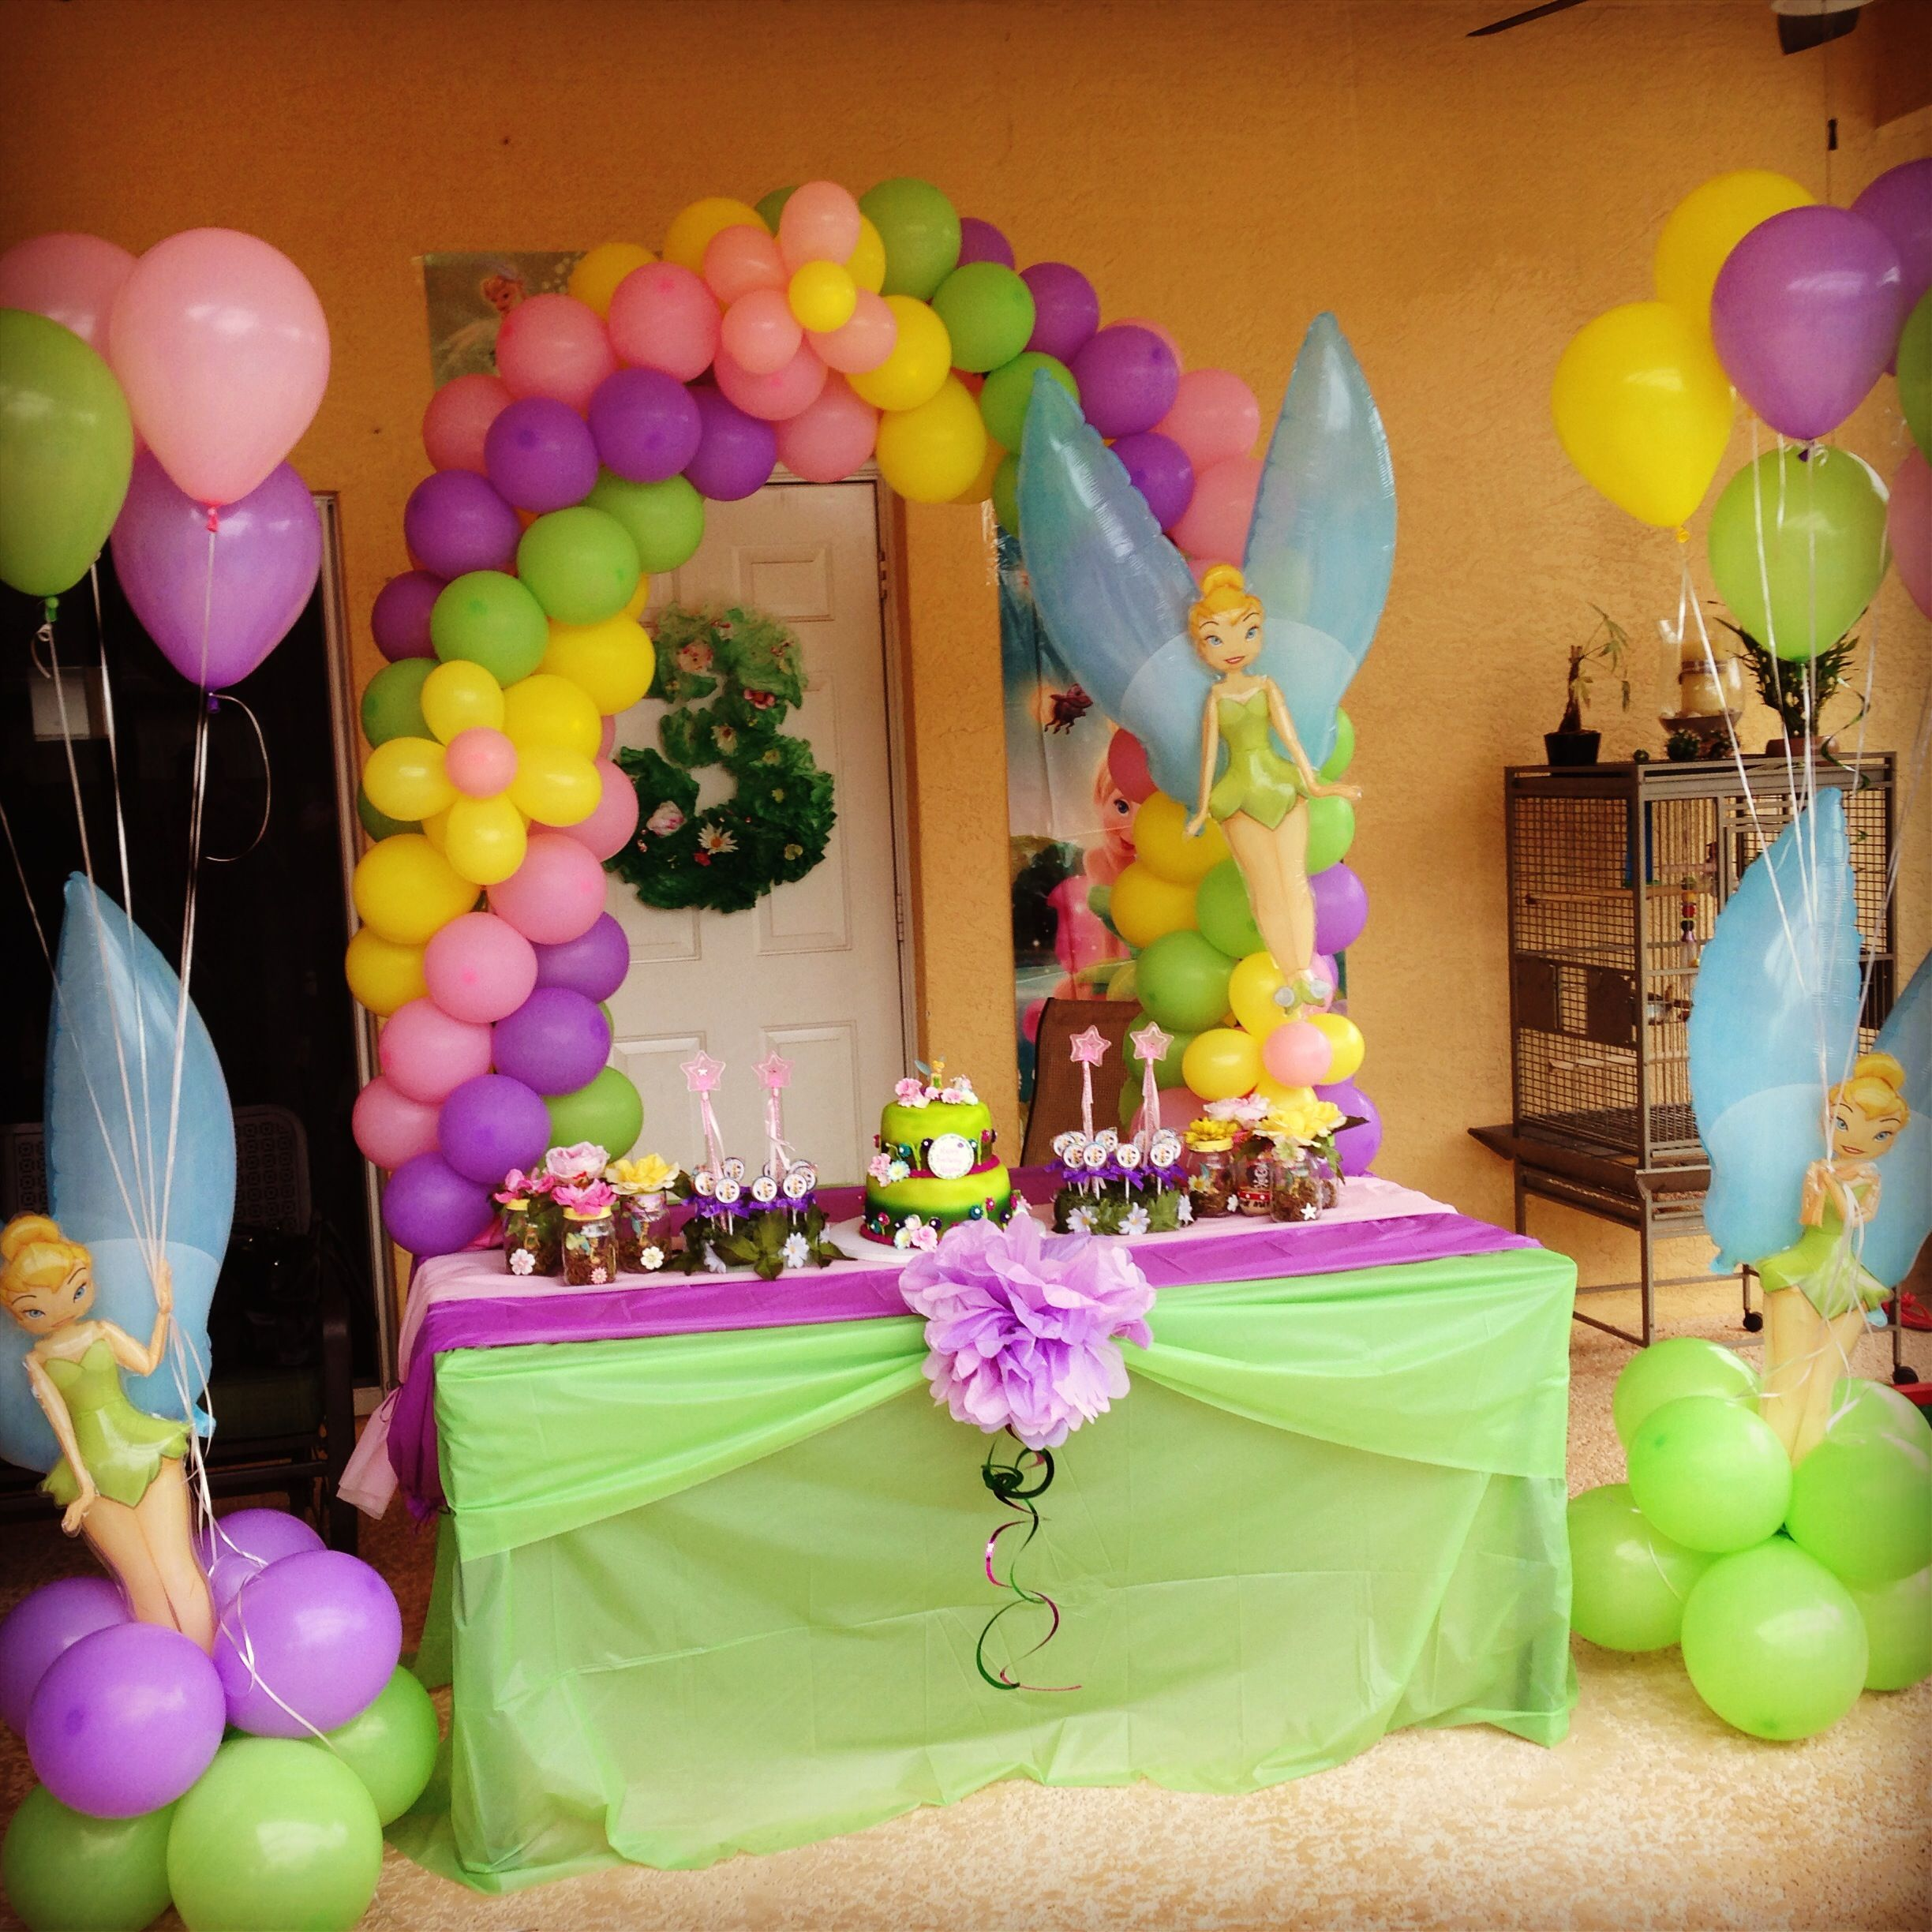 Birthday Decoration: I Like The Table Cloths, Colored Runner Down The Middle